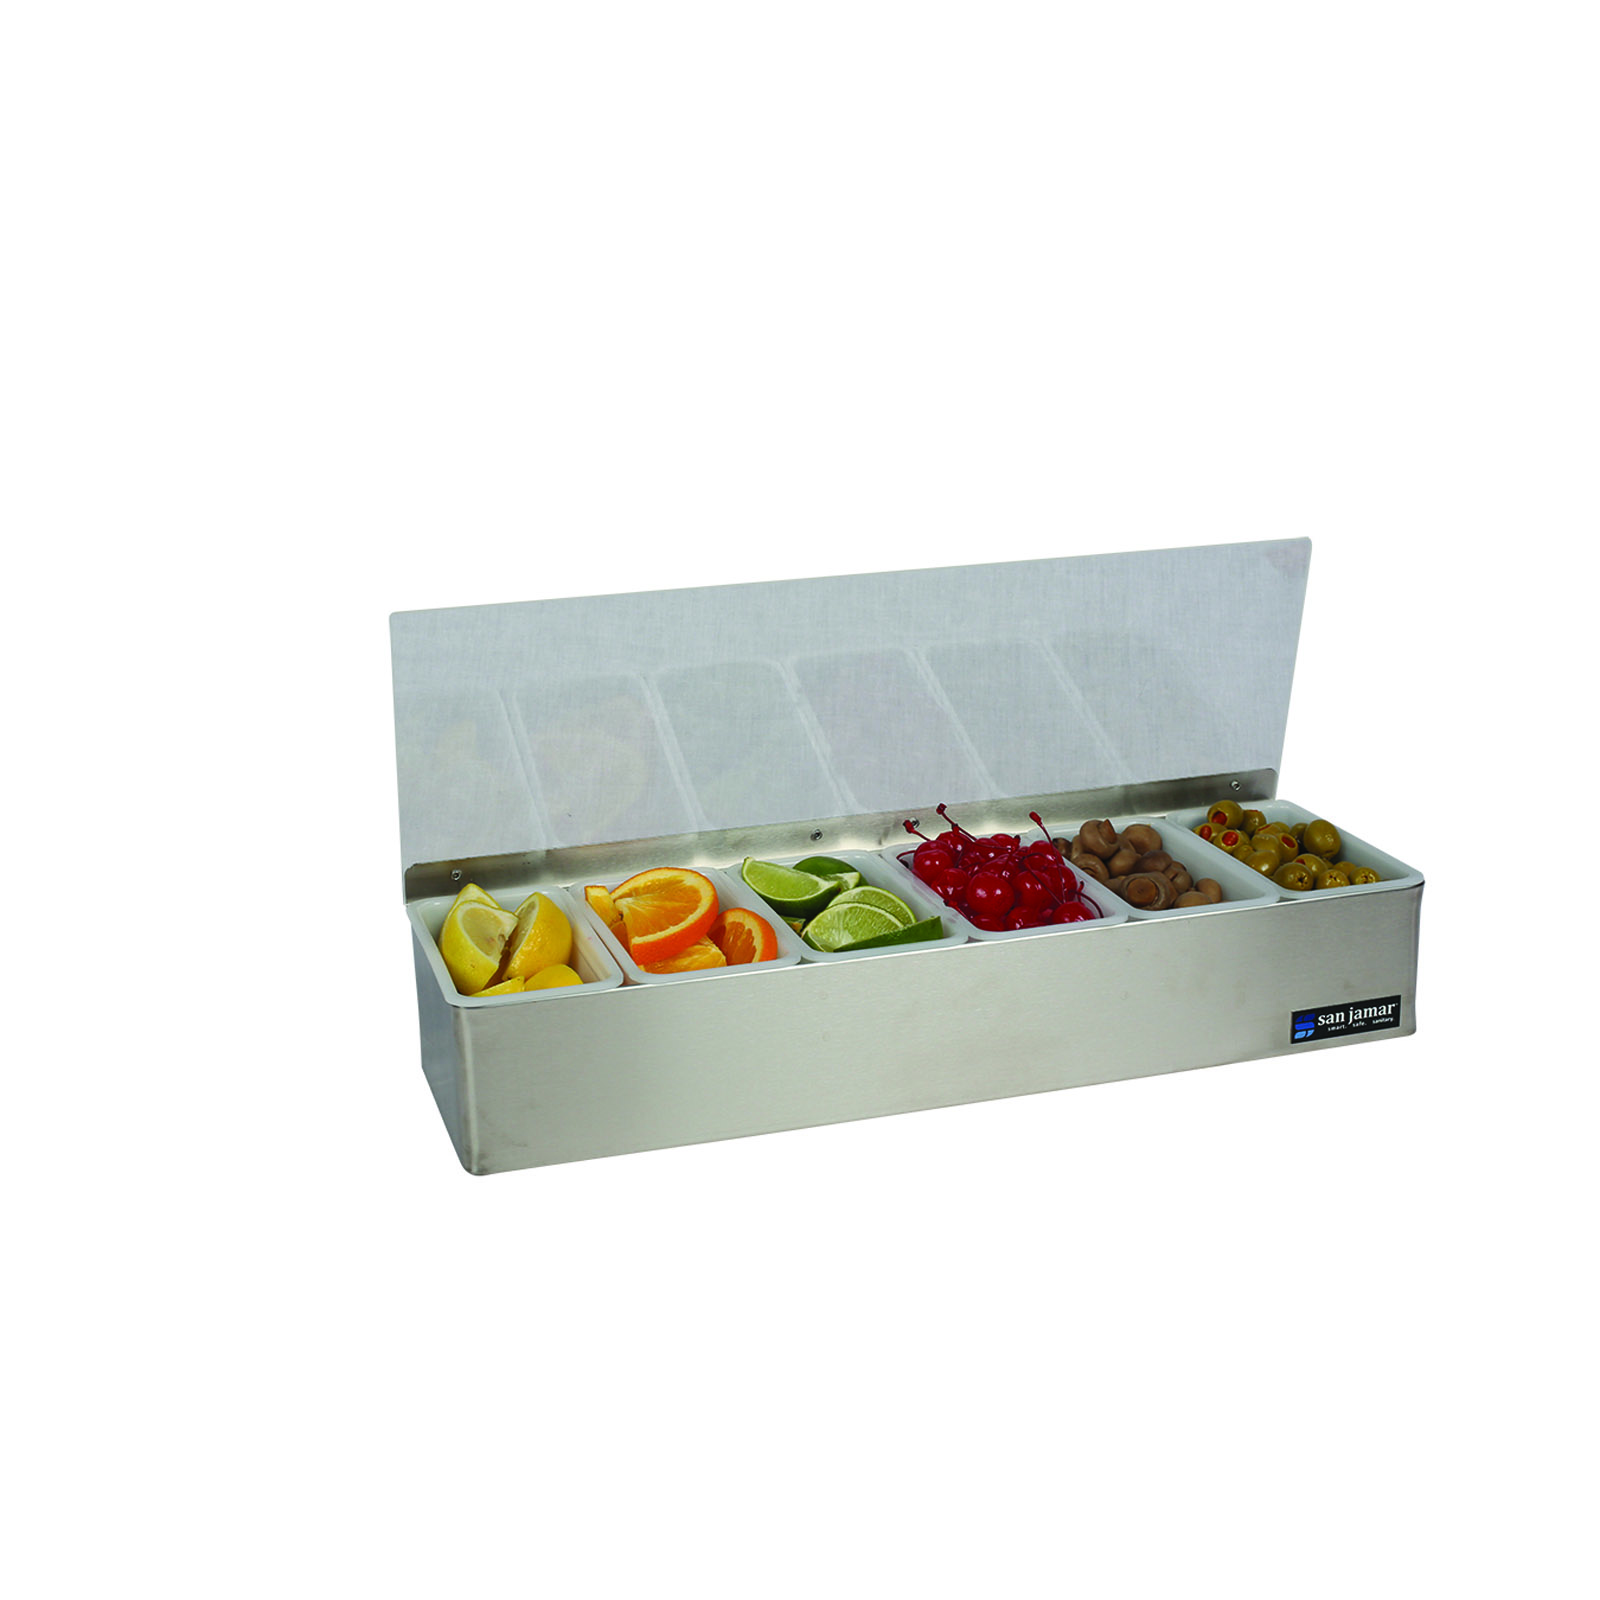 San Jamar B4186LRD bar condiment holder